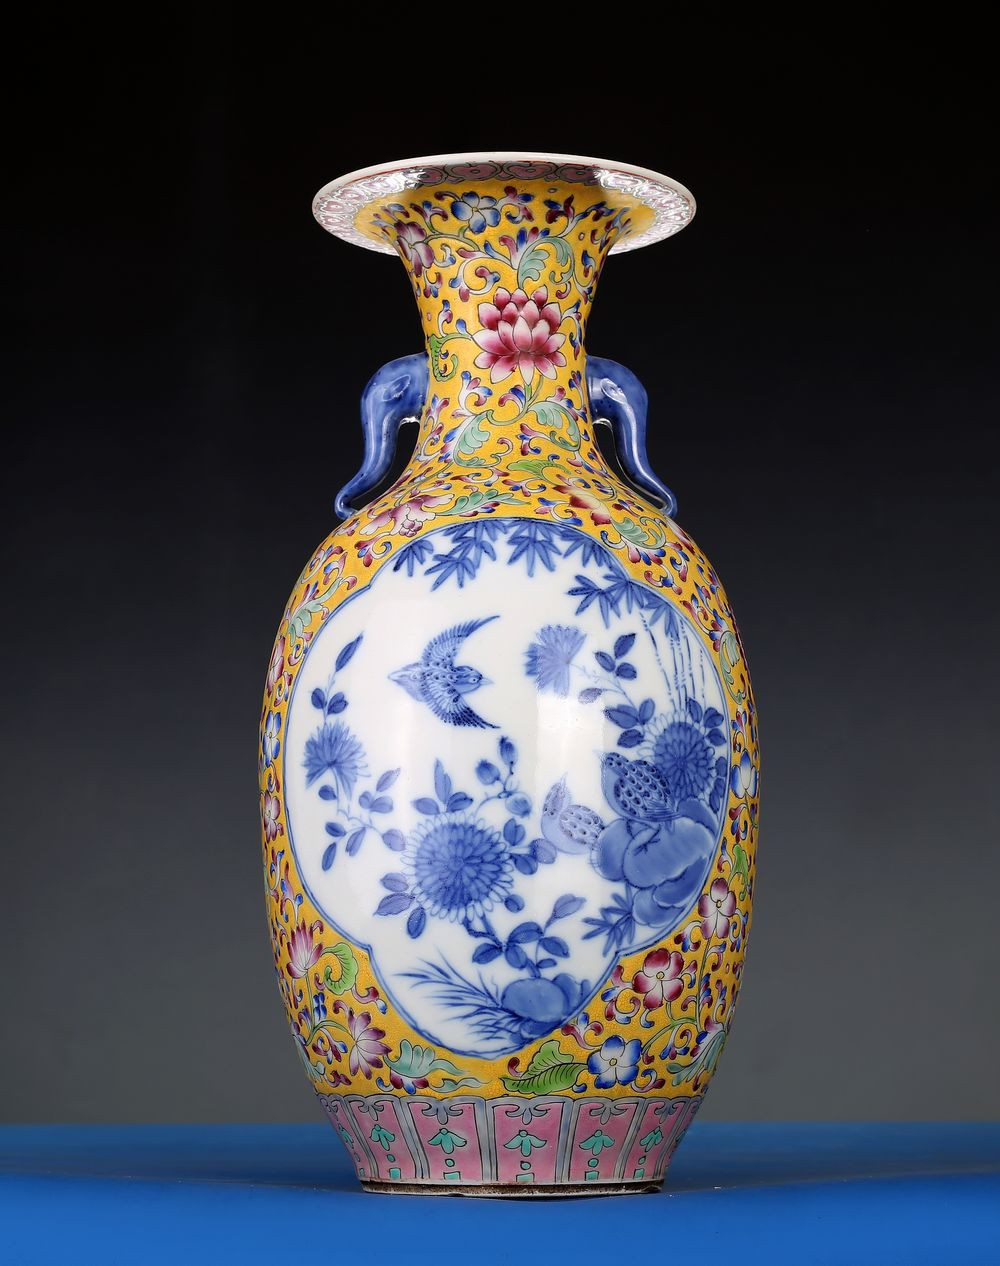 Exquisite Rare Chinese Antique Pottery Porcelain Bottle Vase Collectibles  eBay